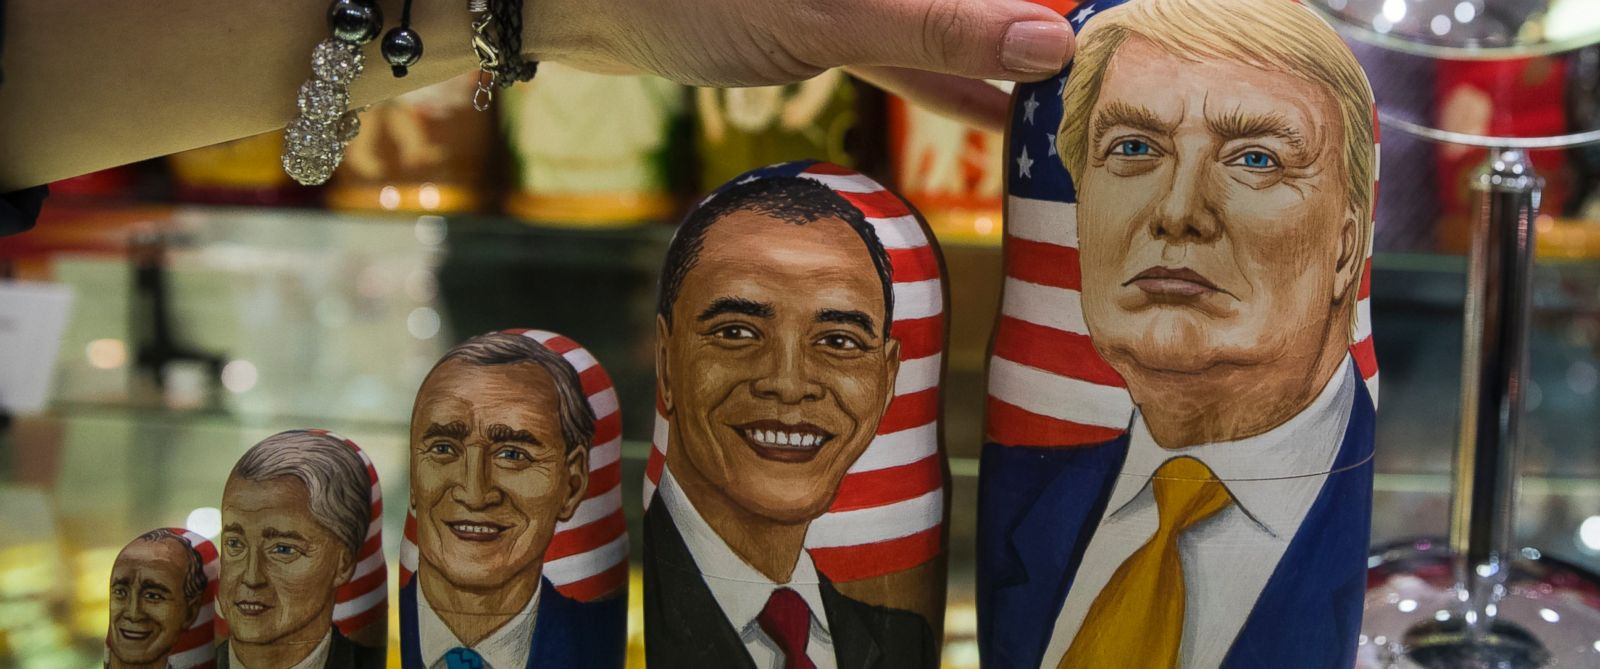 PHOTO: Traditional Russian wooden dolls called Matreska depict U.S. presidents, from left, George H.W. Bush, Bill Clinton, George W. Bush, Barack Obama and presidential candidate Donald Trump displayed in a shop in Moscow, Russia on Nov. 8, 2016.